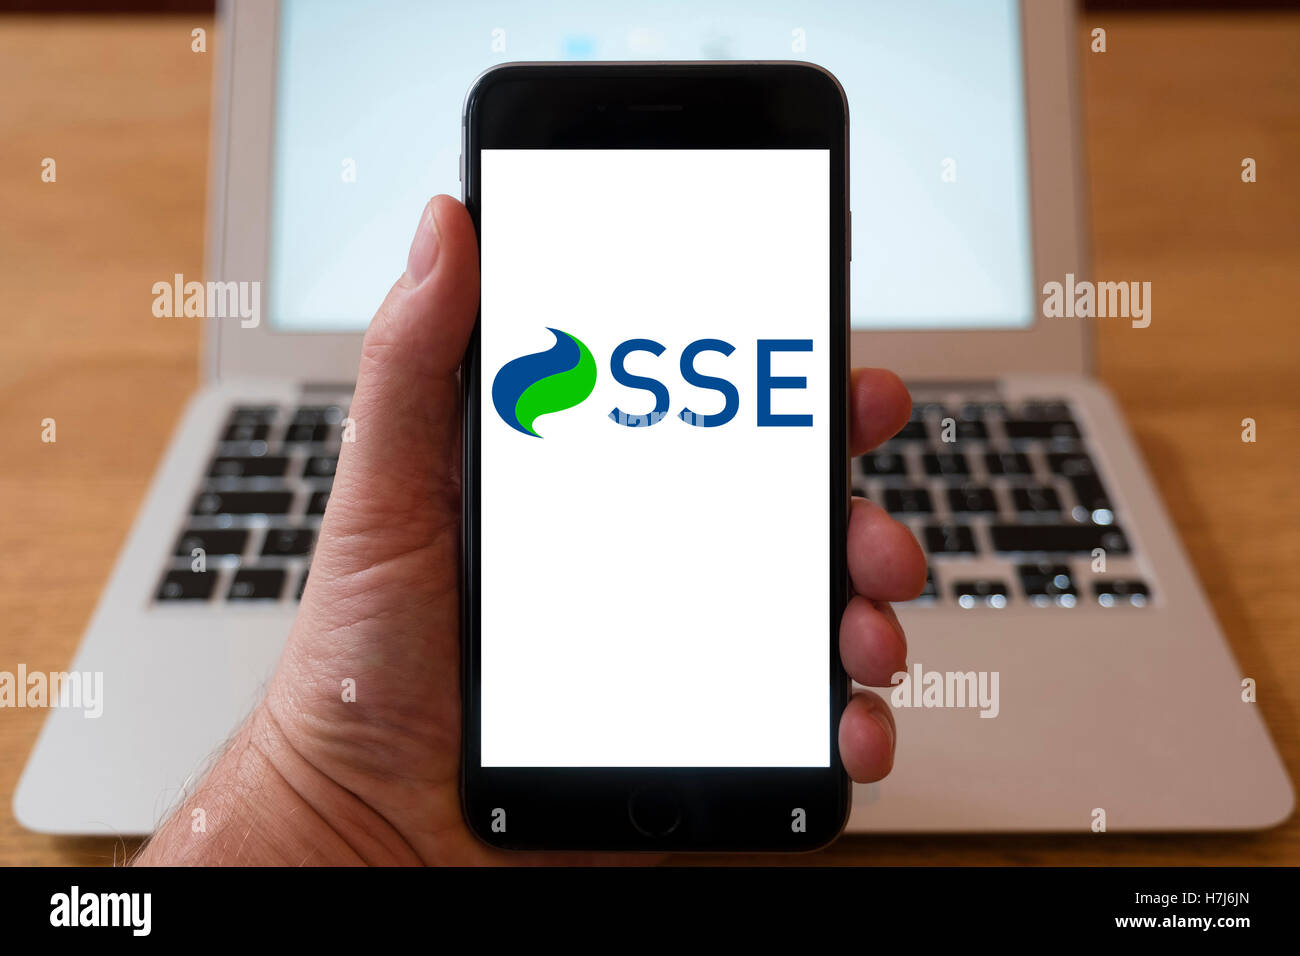 Using iPhone smart phone to display logo of SSE, energy company - Stock Image